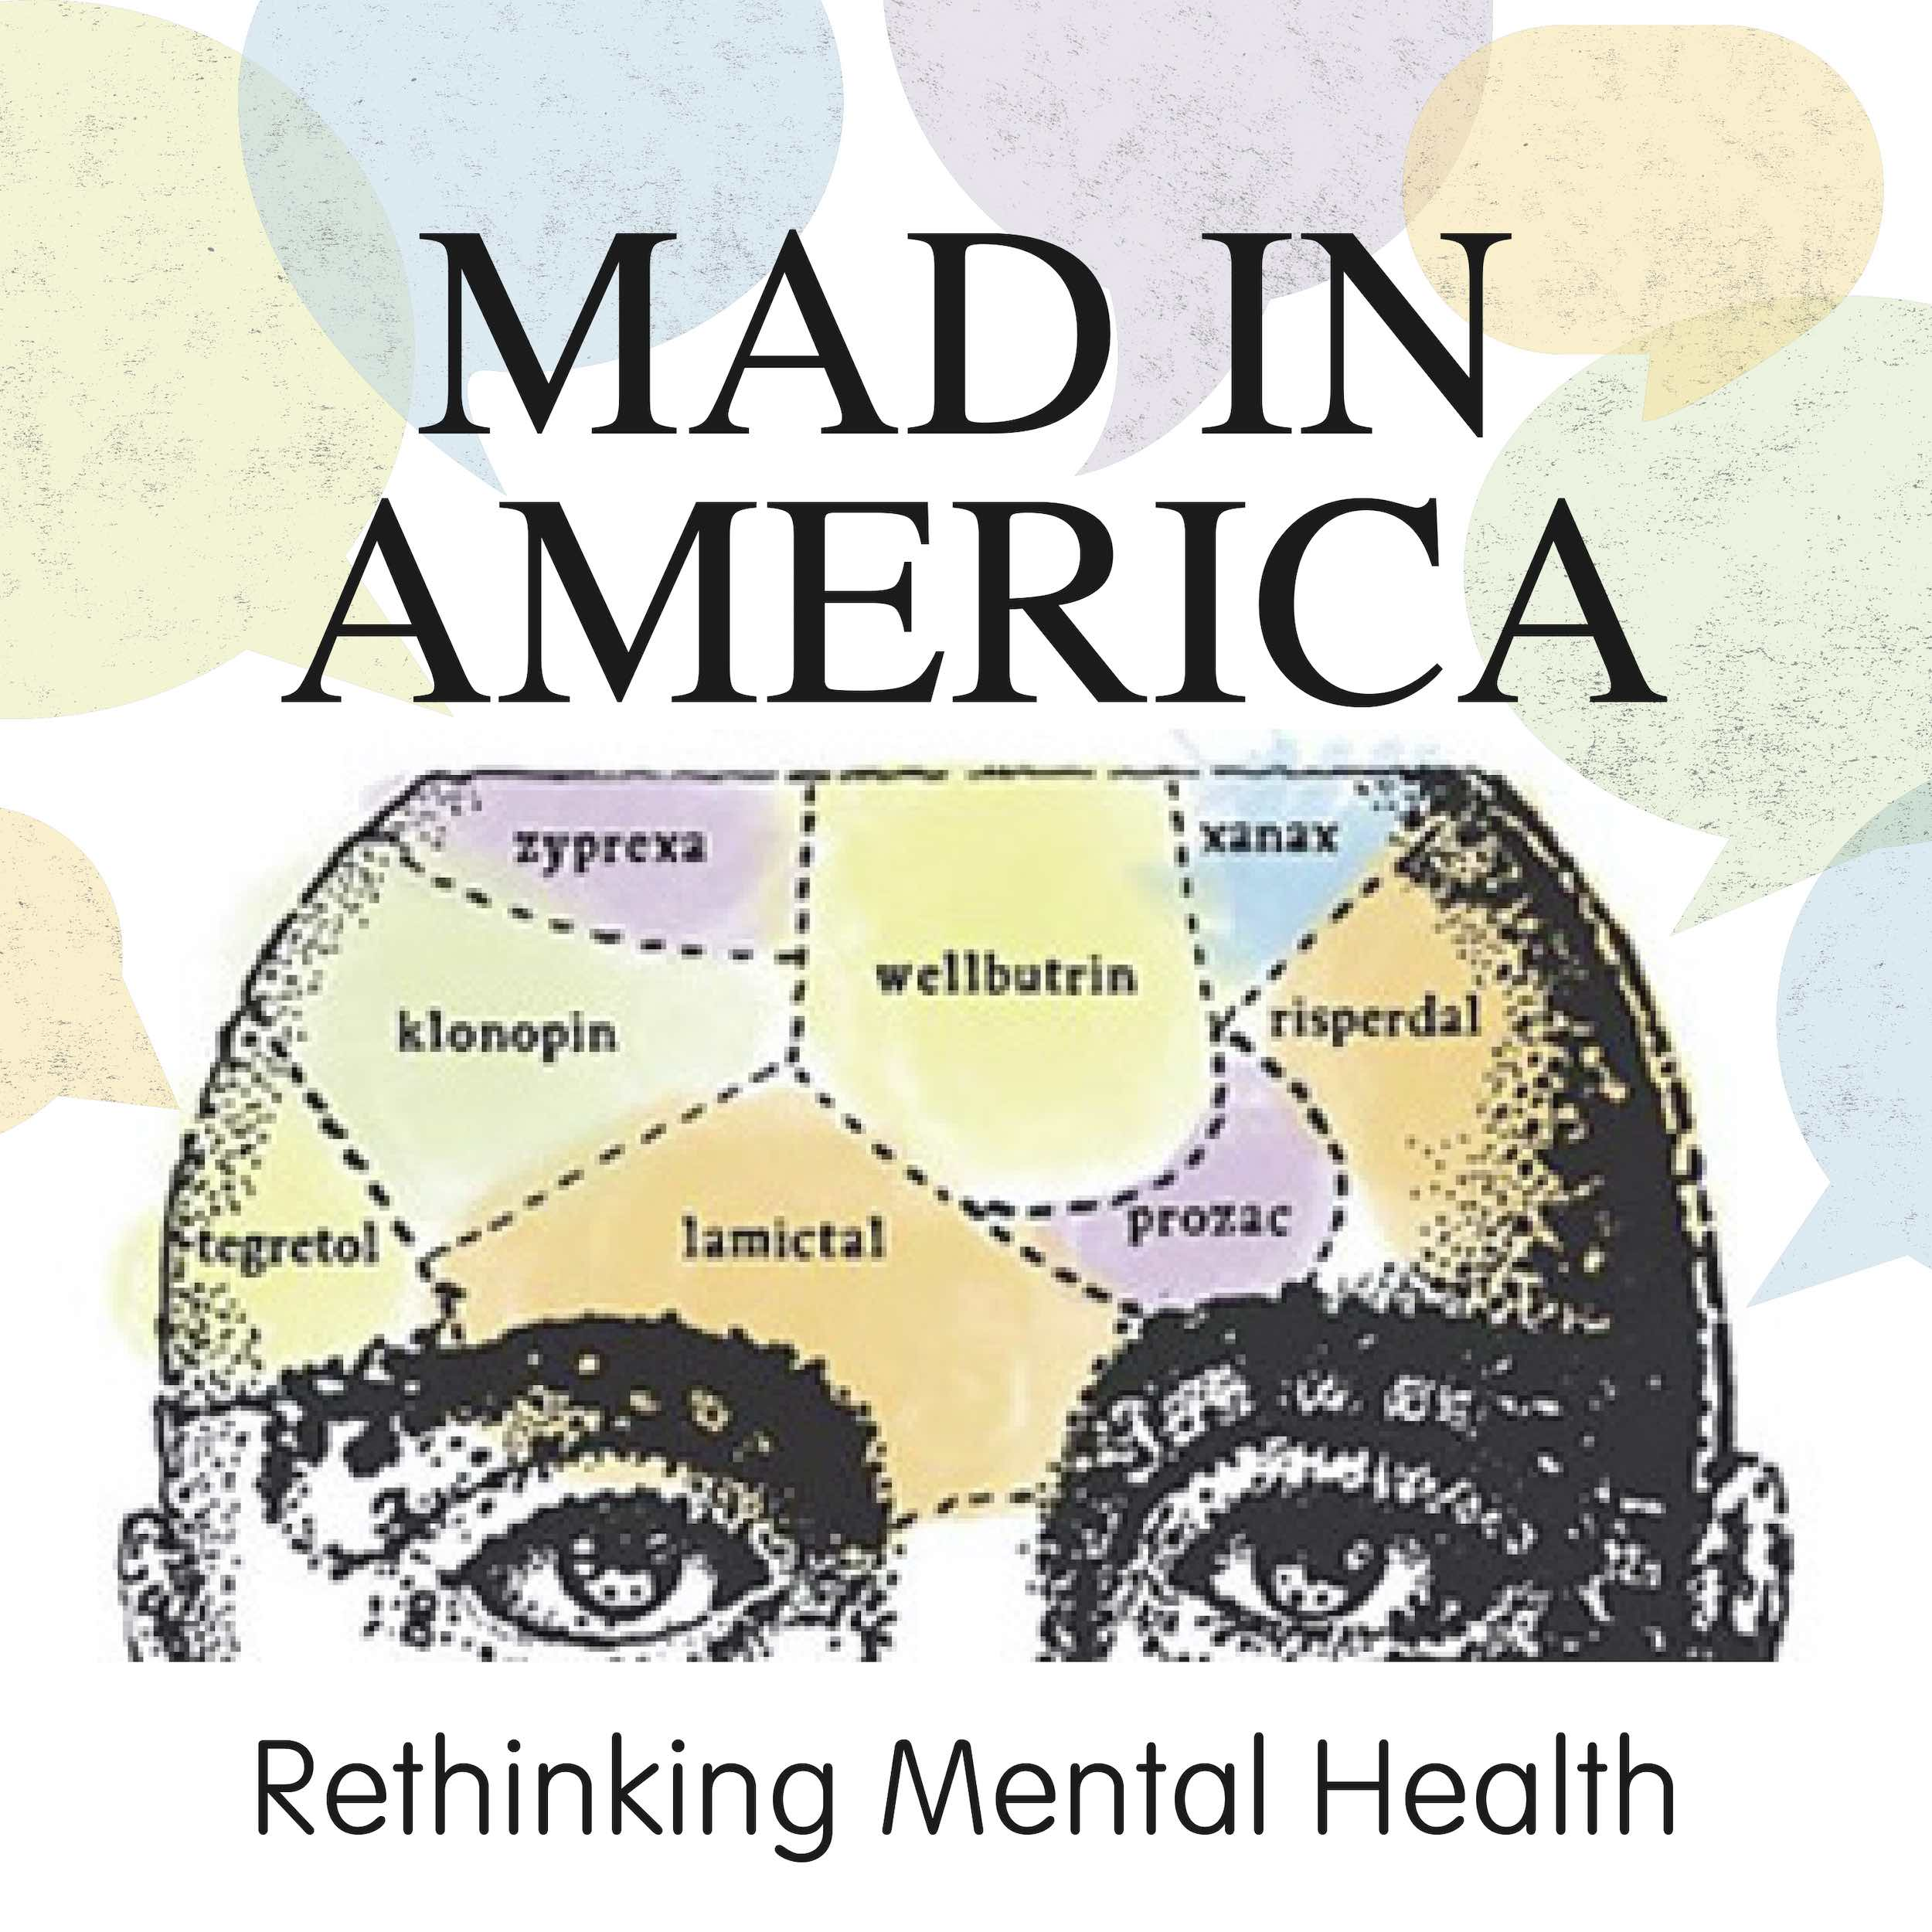 Mad in America: Rethinking Mental Health - Wendy Dolin - Making Akathisia a Household Word